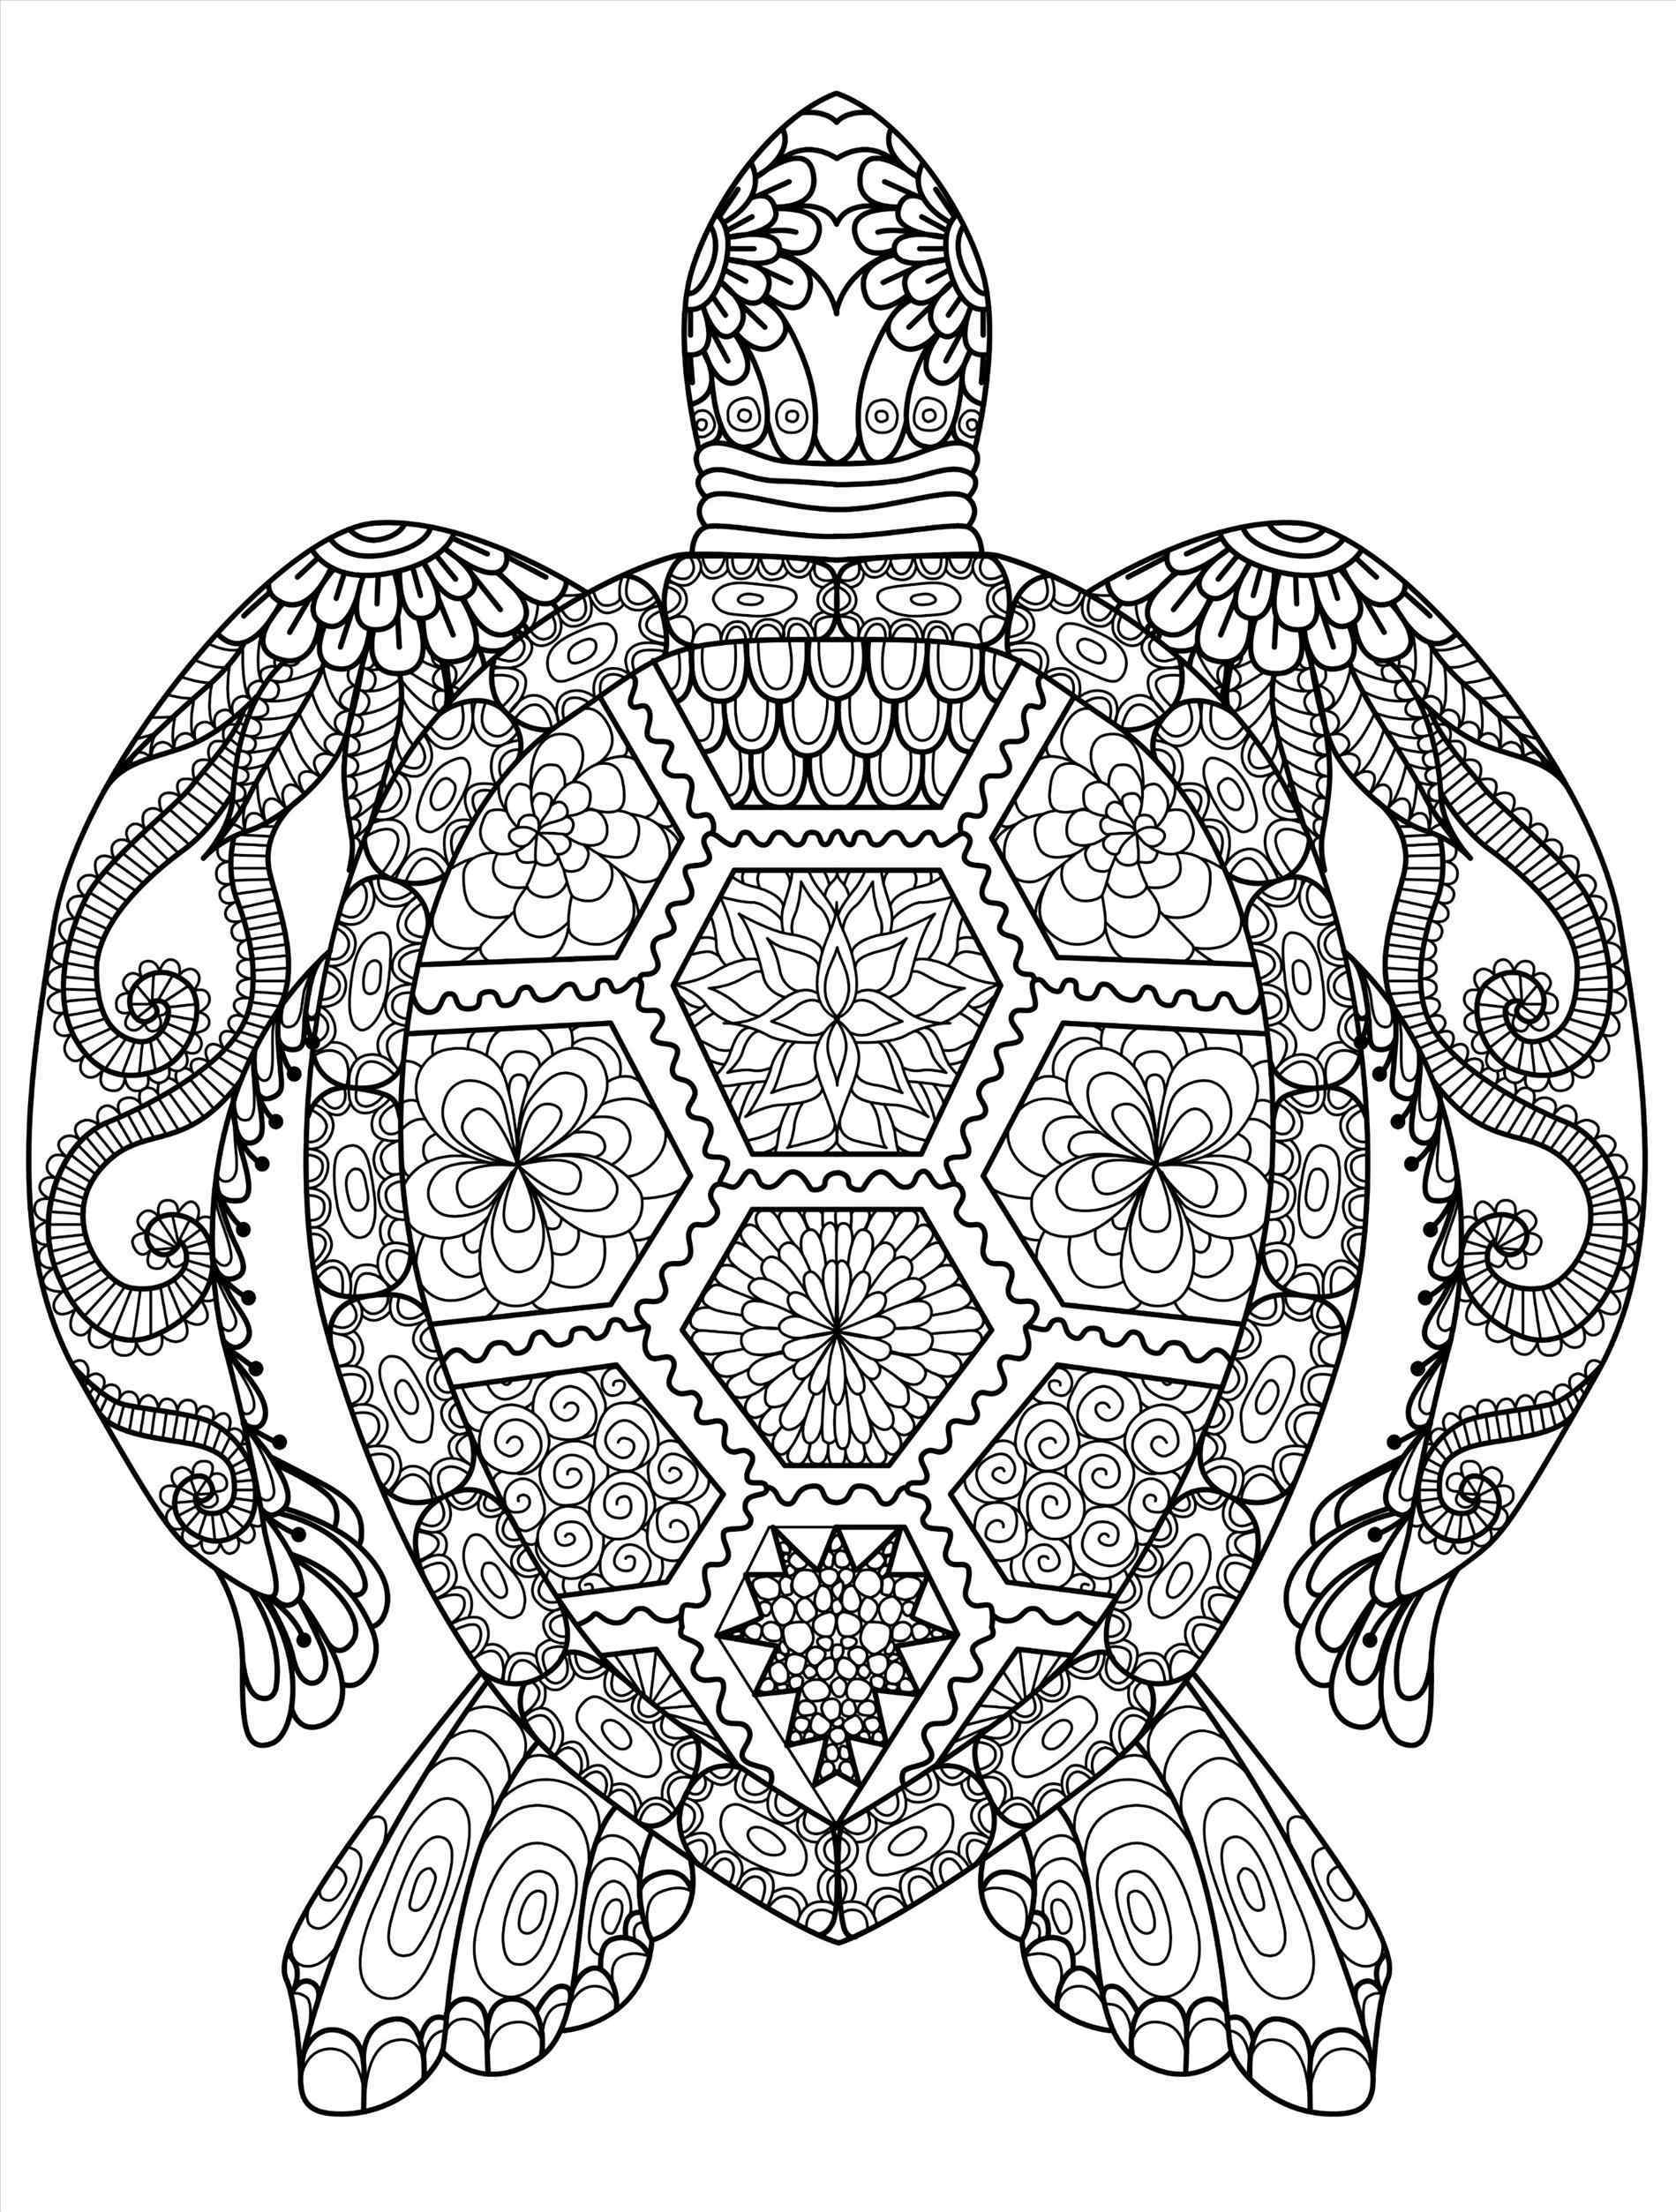 intricate coloring pages free printable abstract coloring pages for adults pages coloring intricate